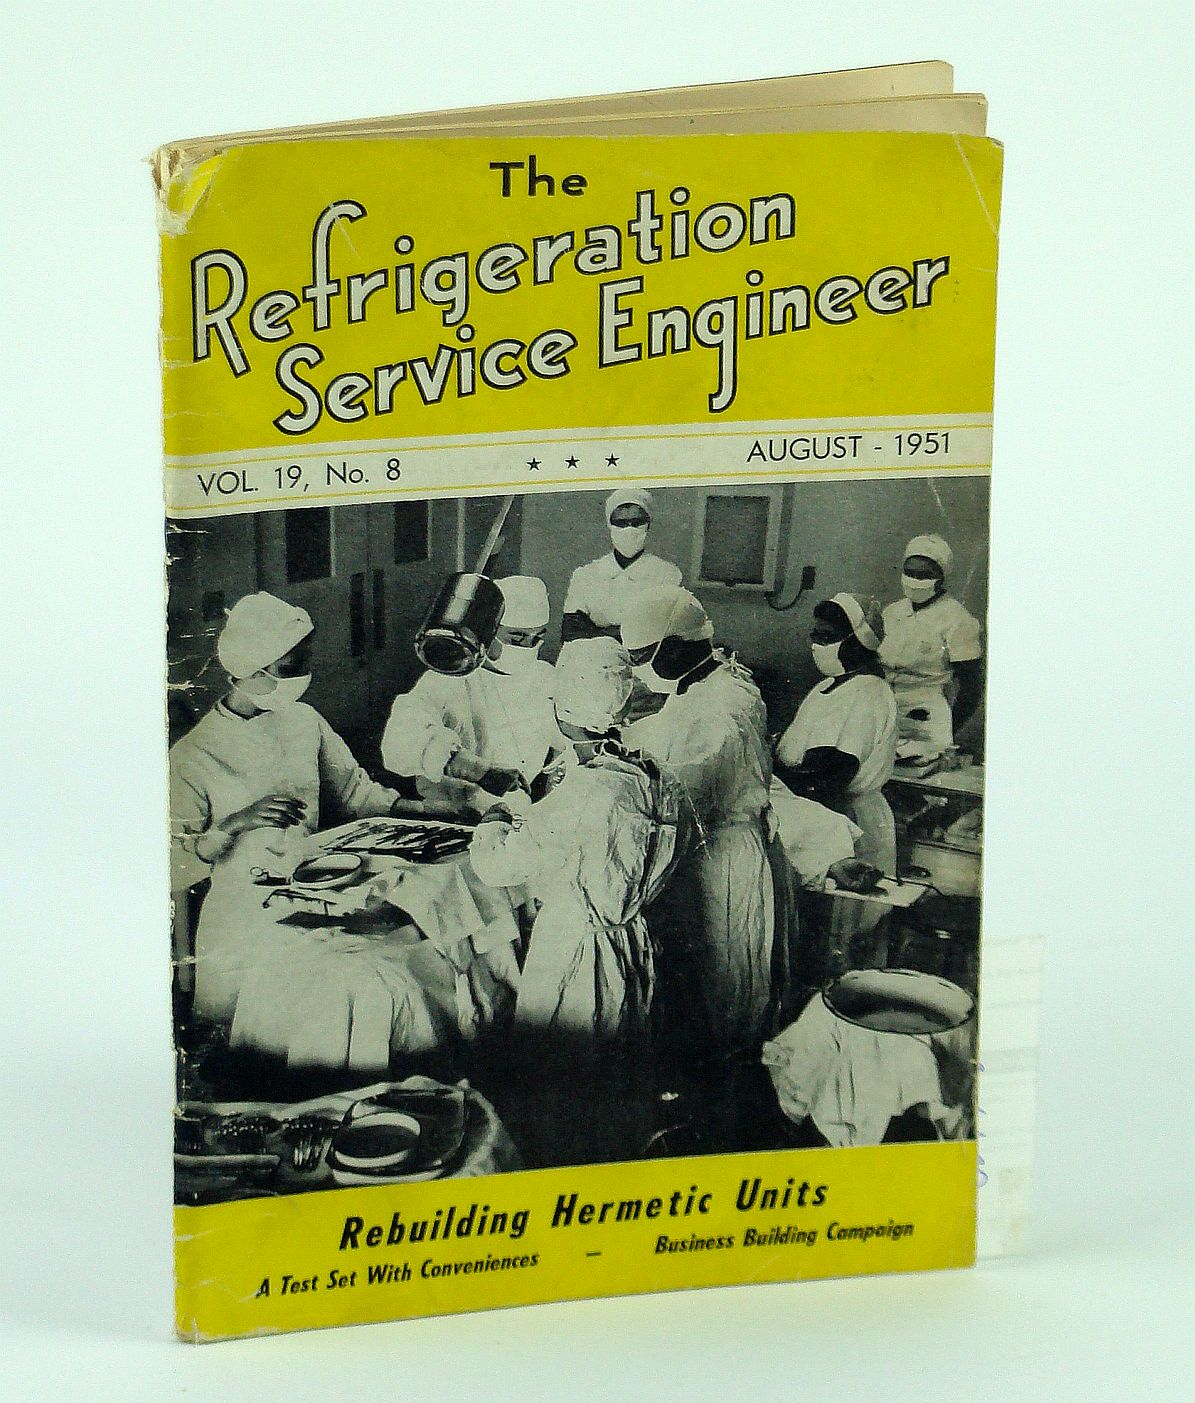 Image for The Refrigeration Service Engineer, August 1951, Volume 19, No. 8 - Rebuiding Hermetic Units